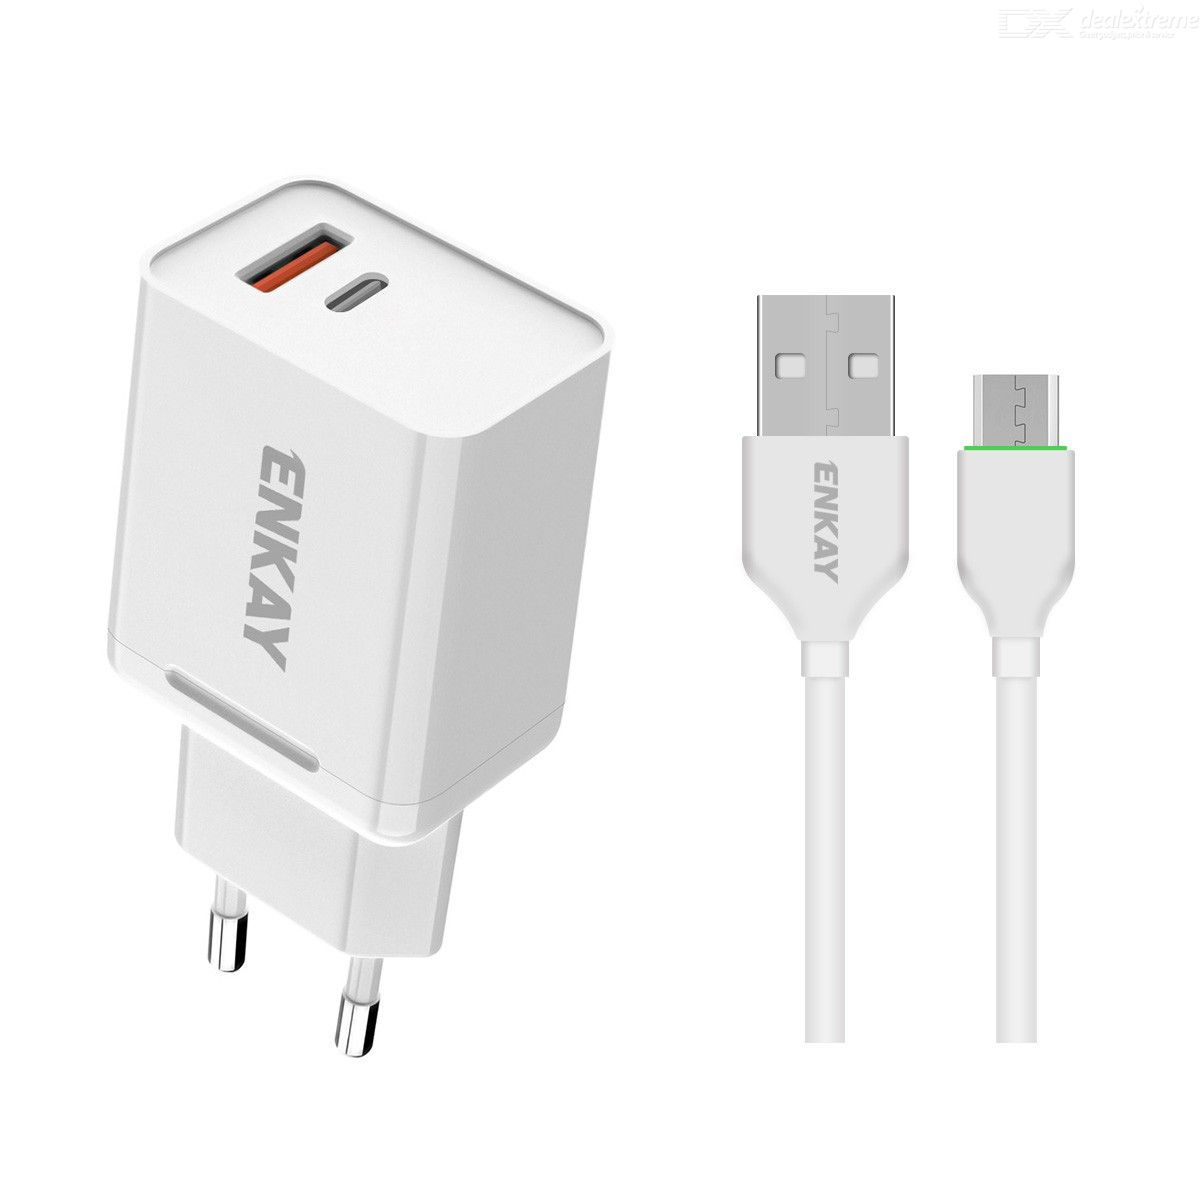 Hat-Prince ENKAY 18W USB + Type-C Power Adapter QC3.0 PD Super Fast Charging EU Plug Portable Travel Charger With Type-C Cable